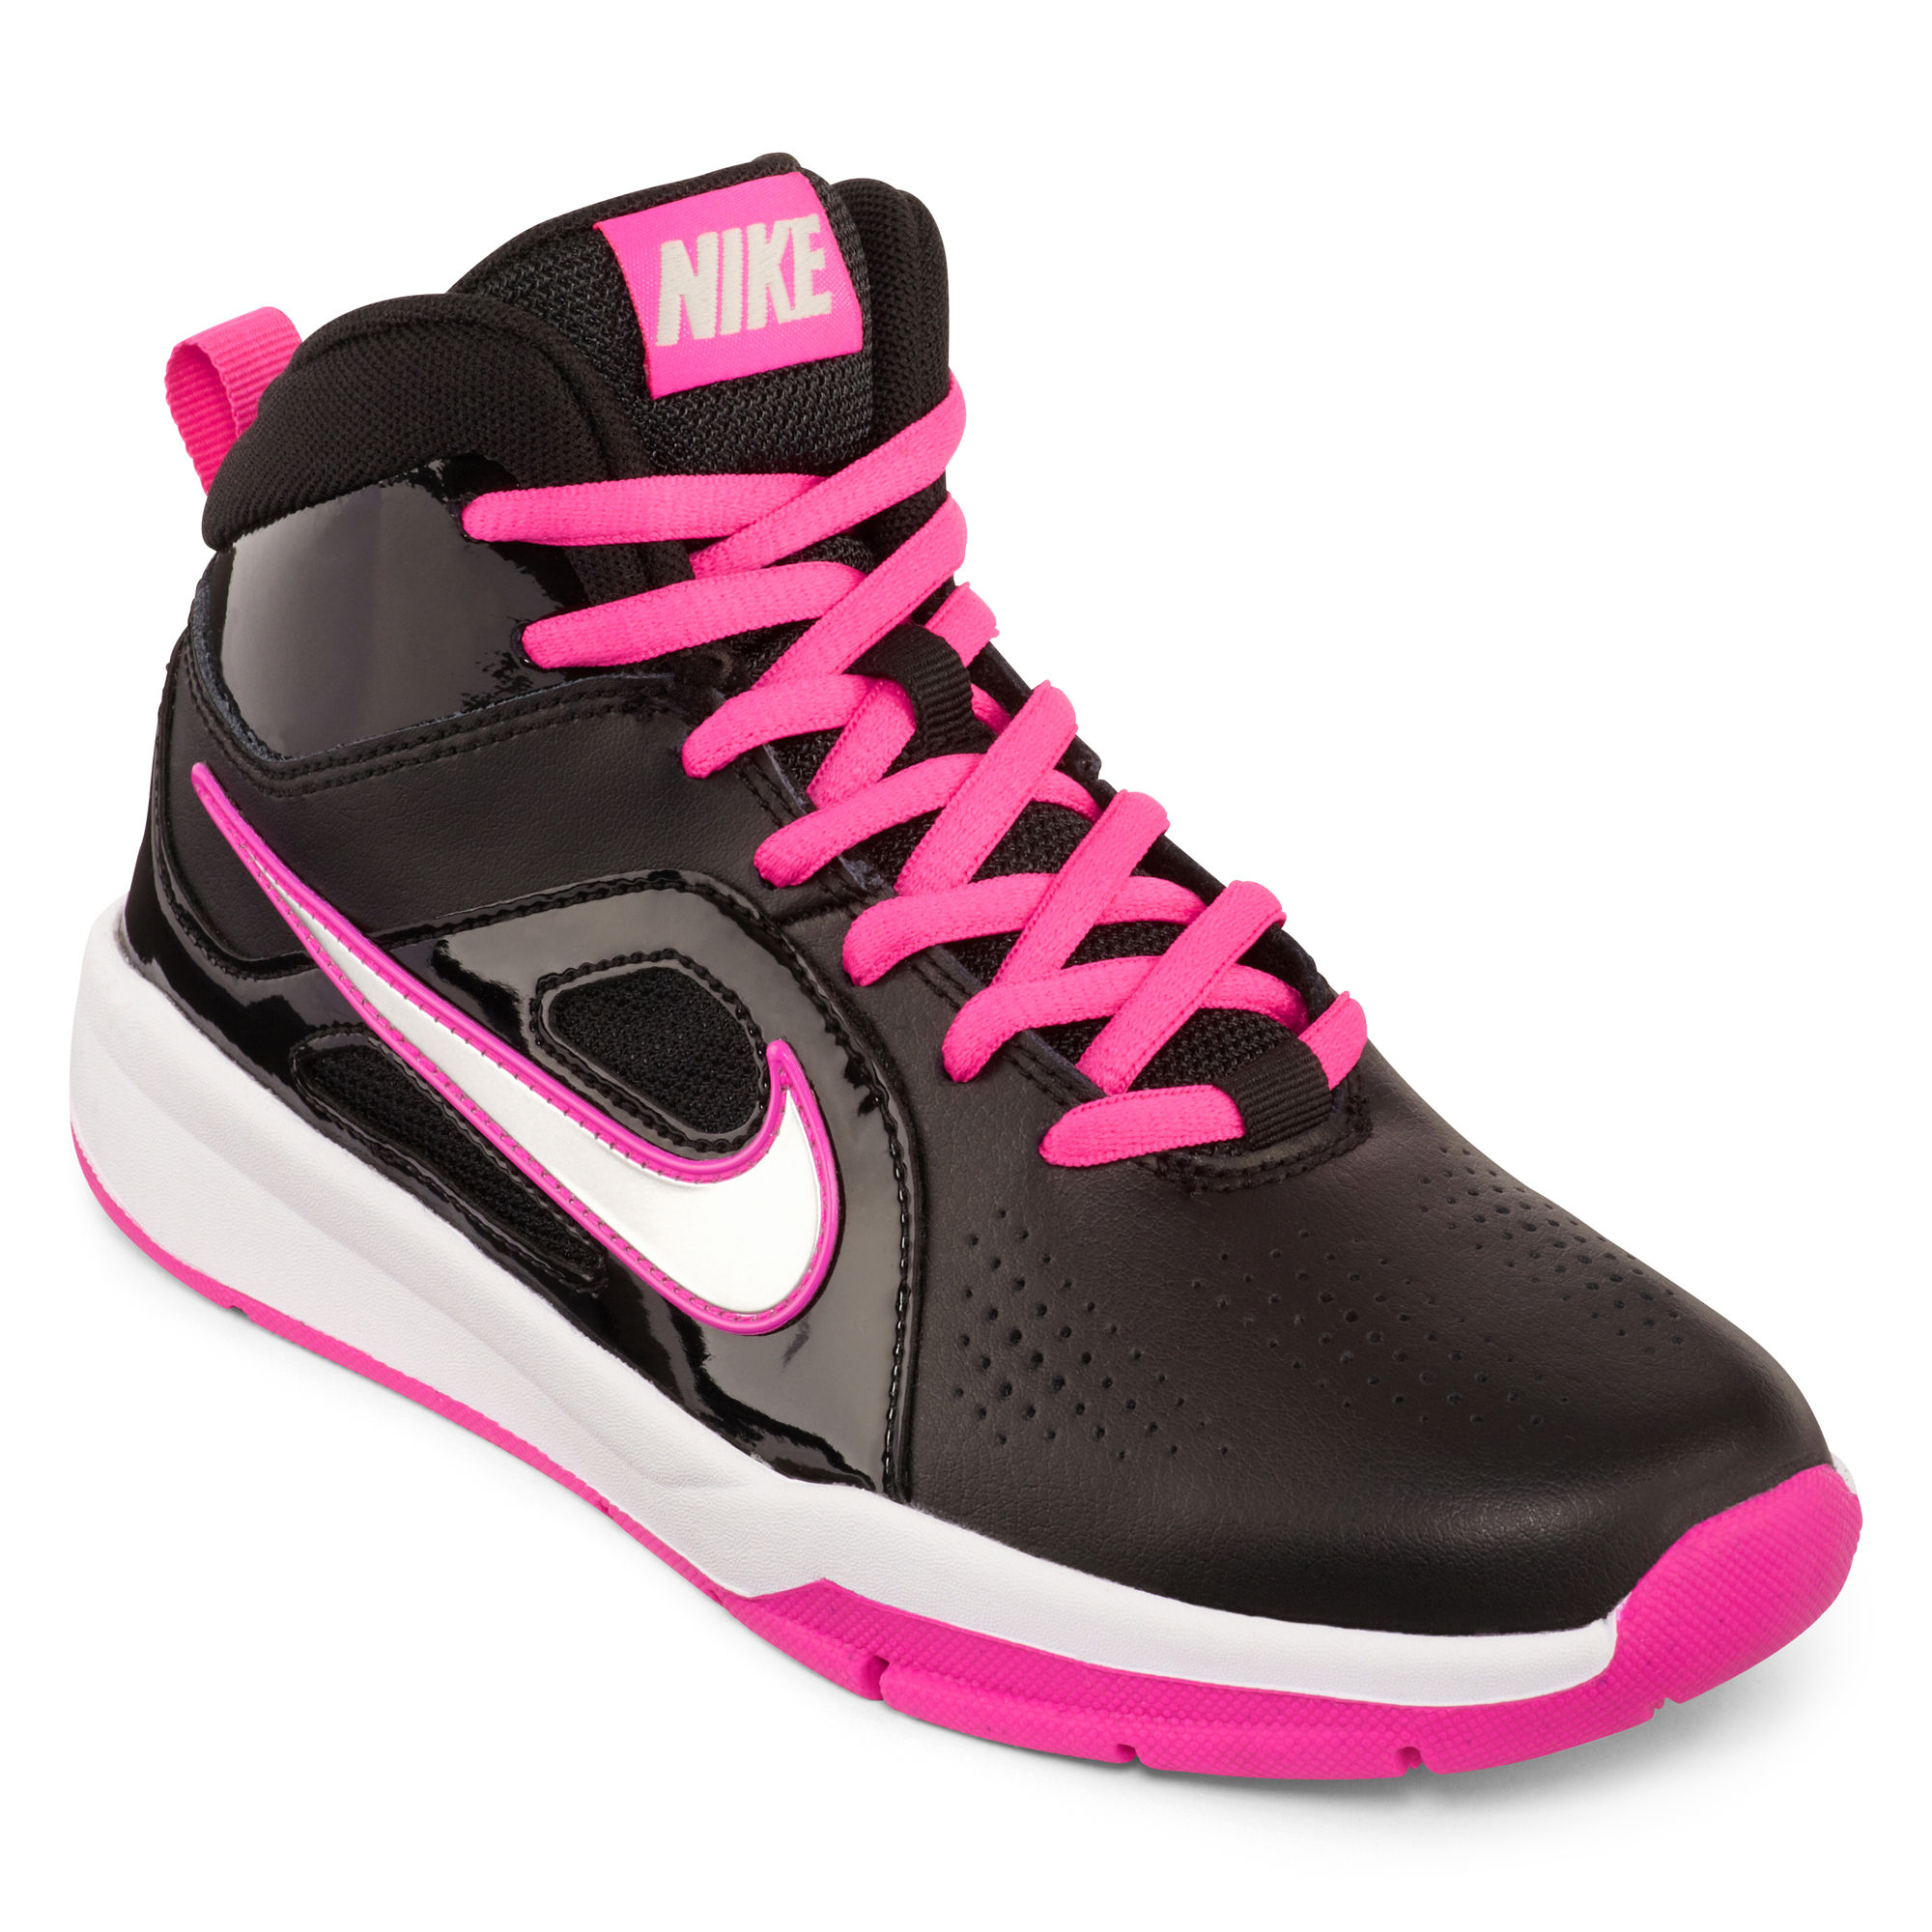 nike youth basketball shoes girls